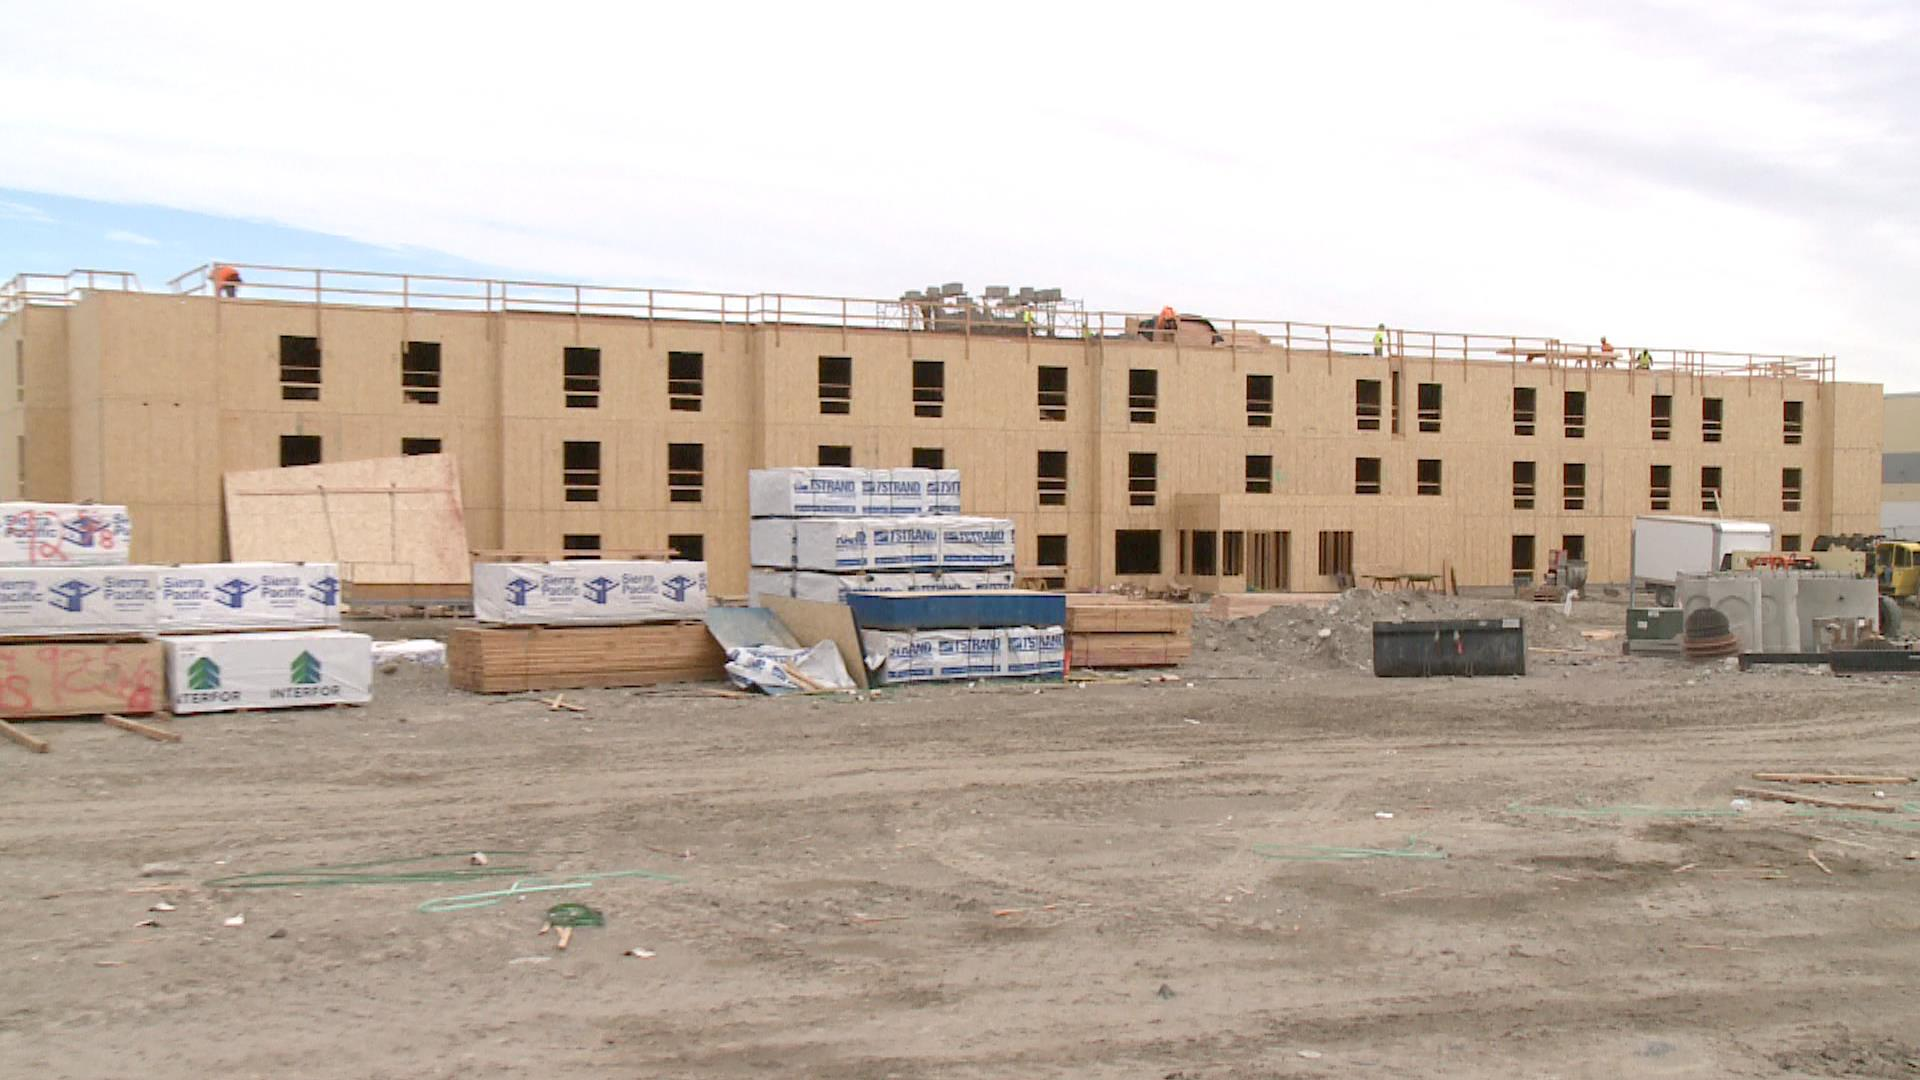 New Extended Stay Hotel on the rise!